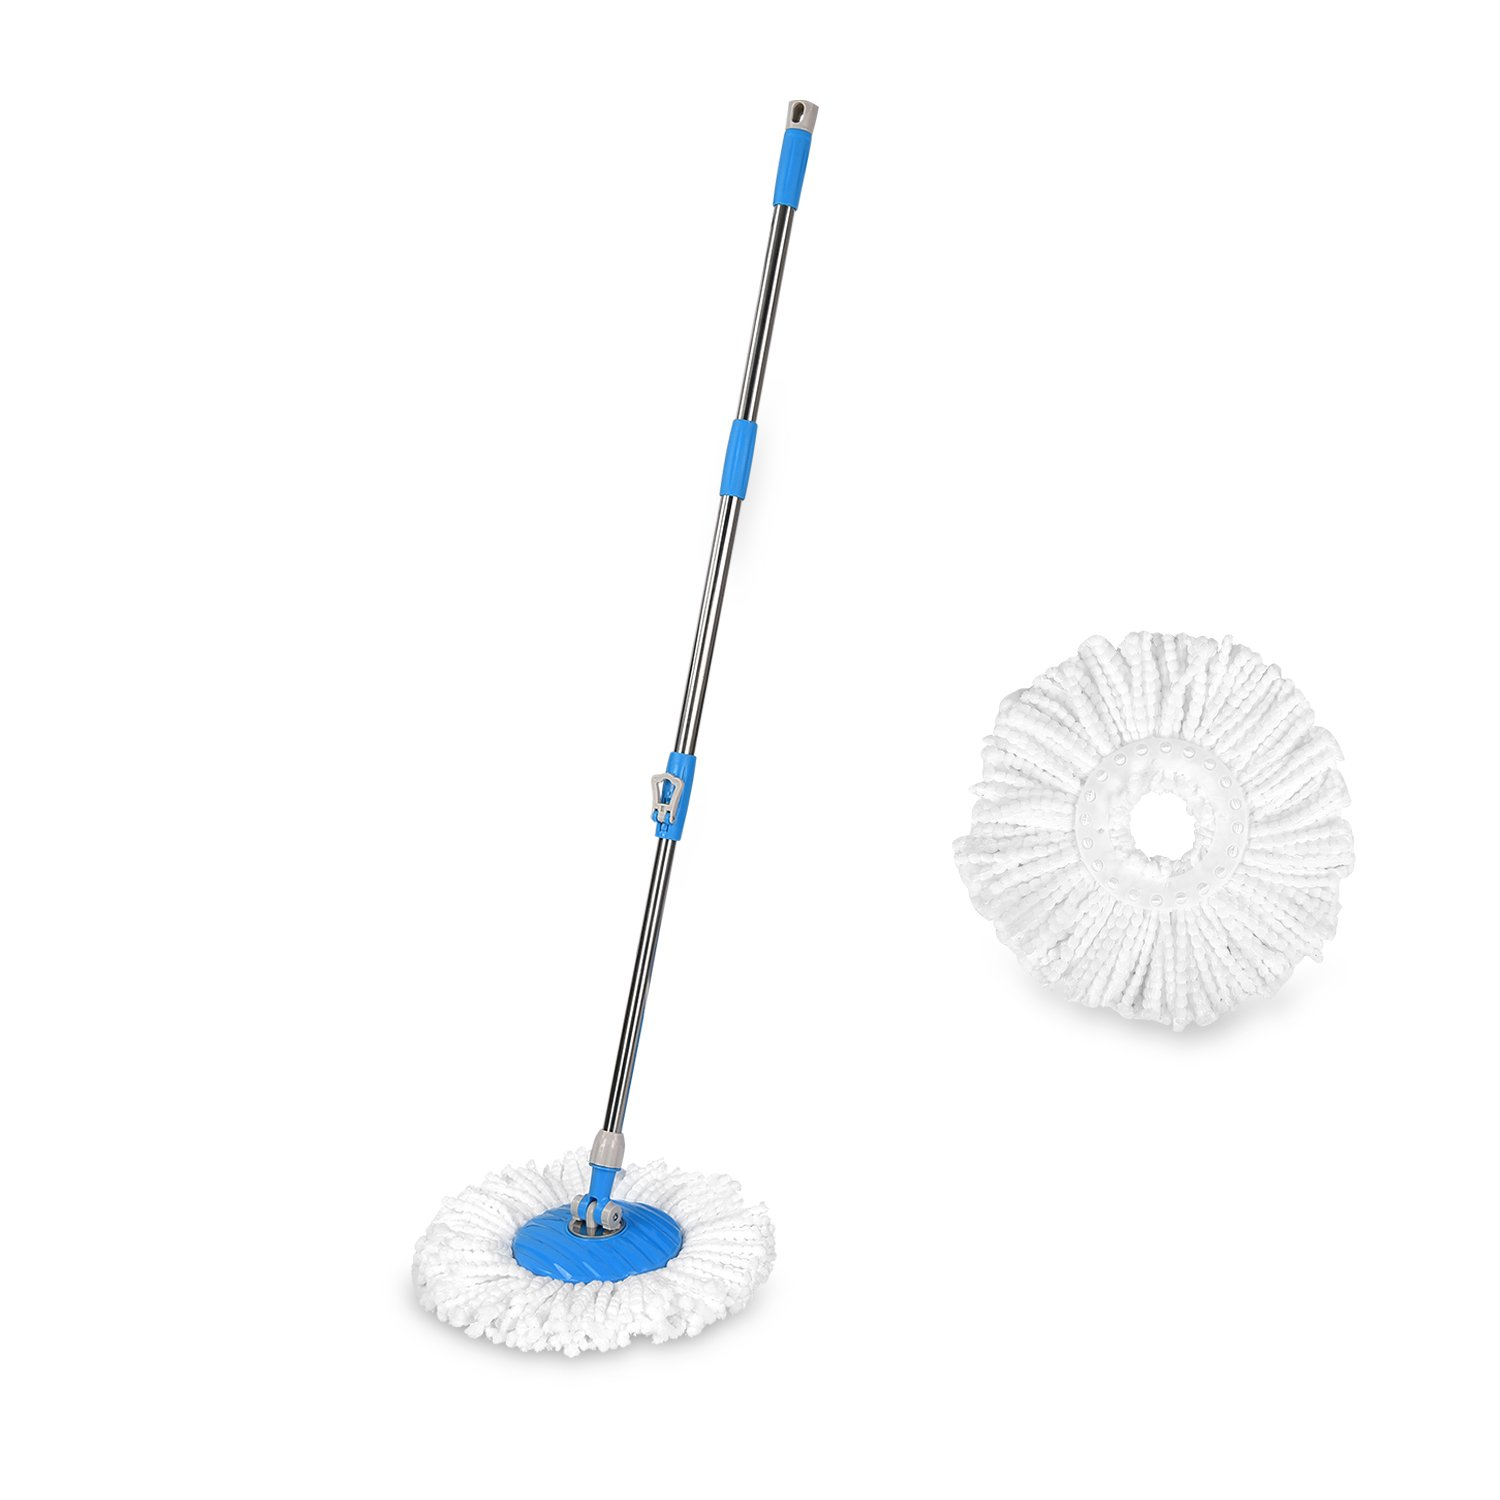 HAPINNEX Floor Mop Handle Replacement & 2 Microfiber Mop Heads Refills - Suitable for Push & Pull Spin Cleaning Mops Bucket